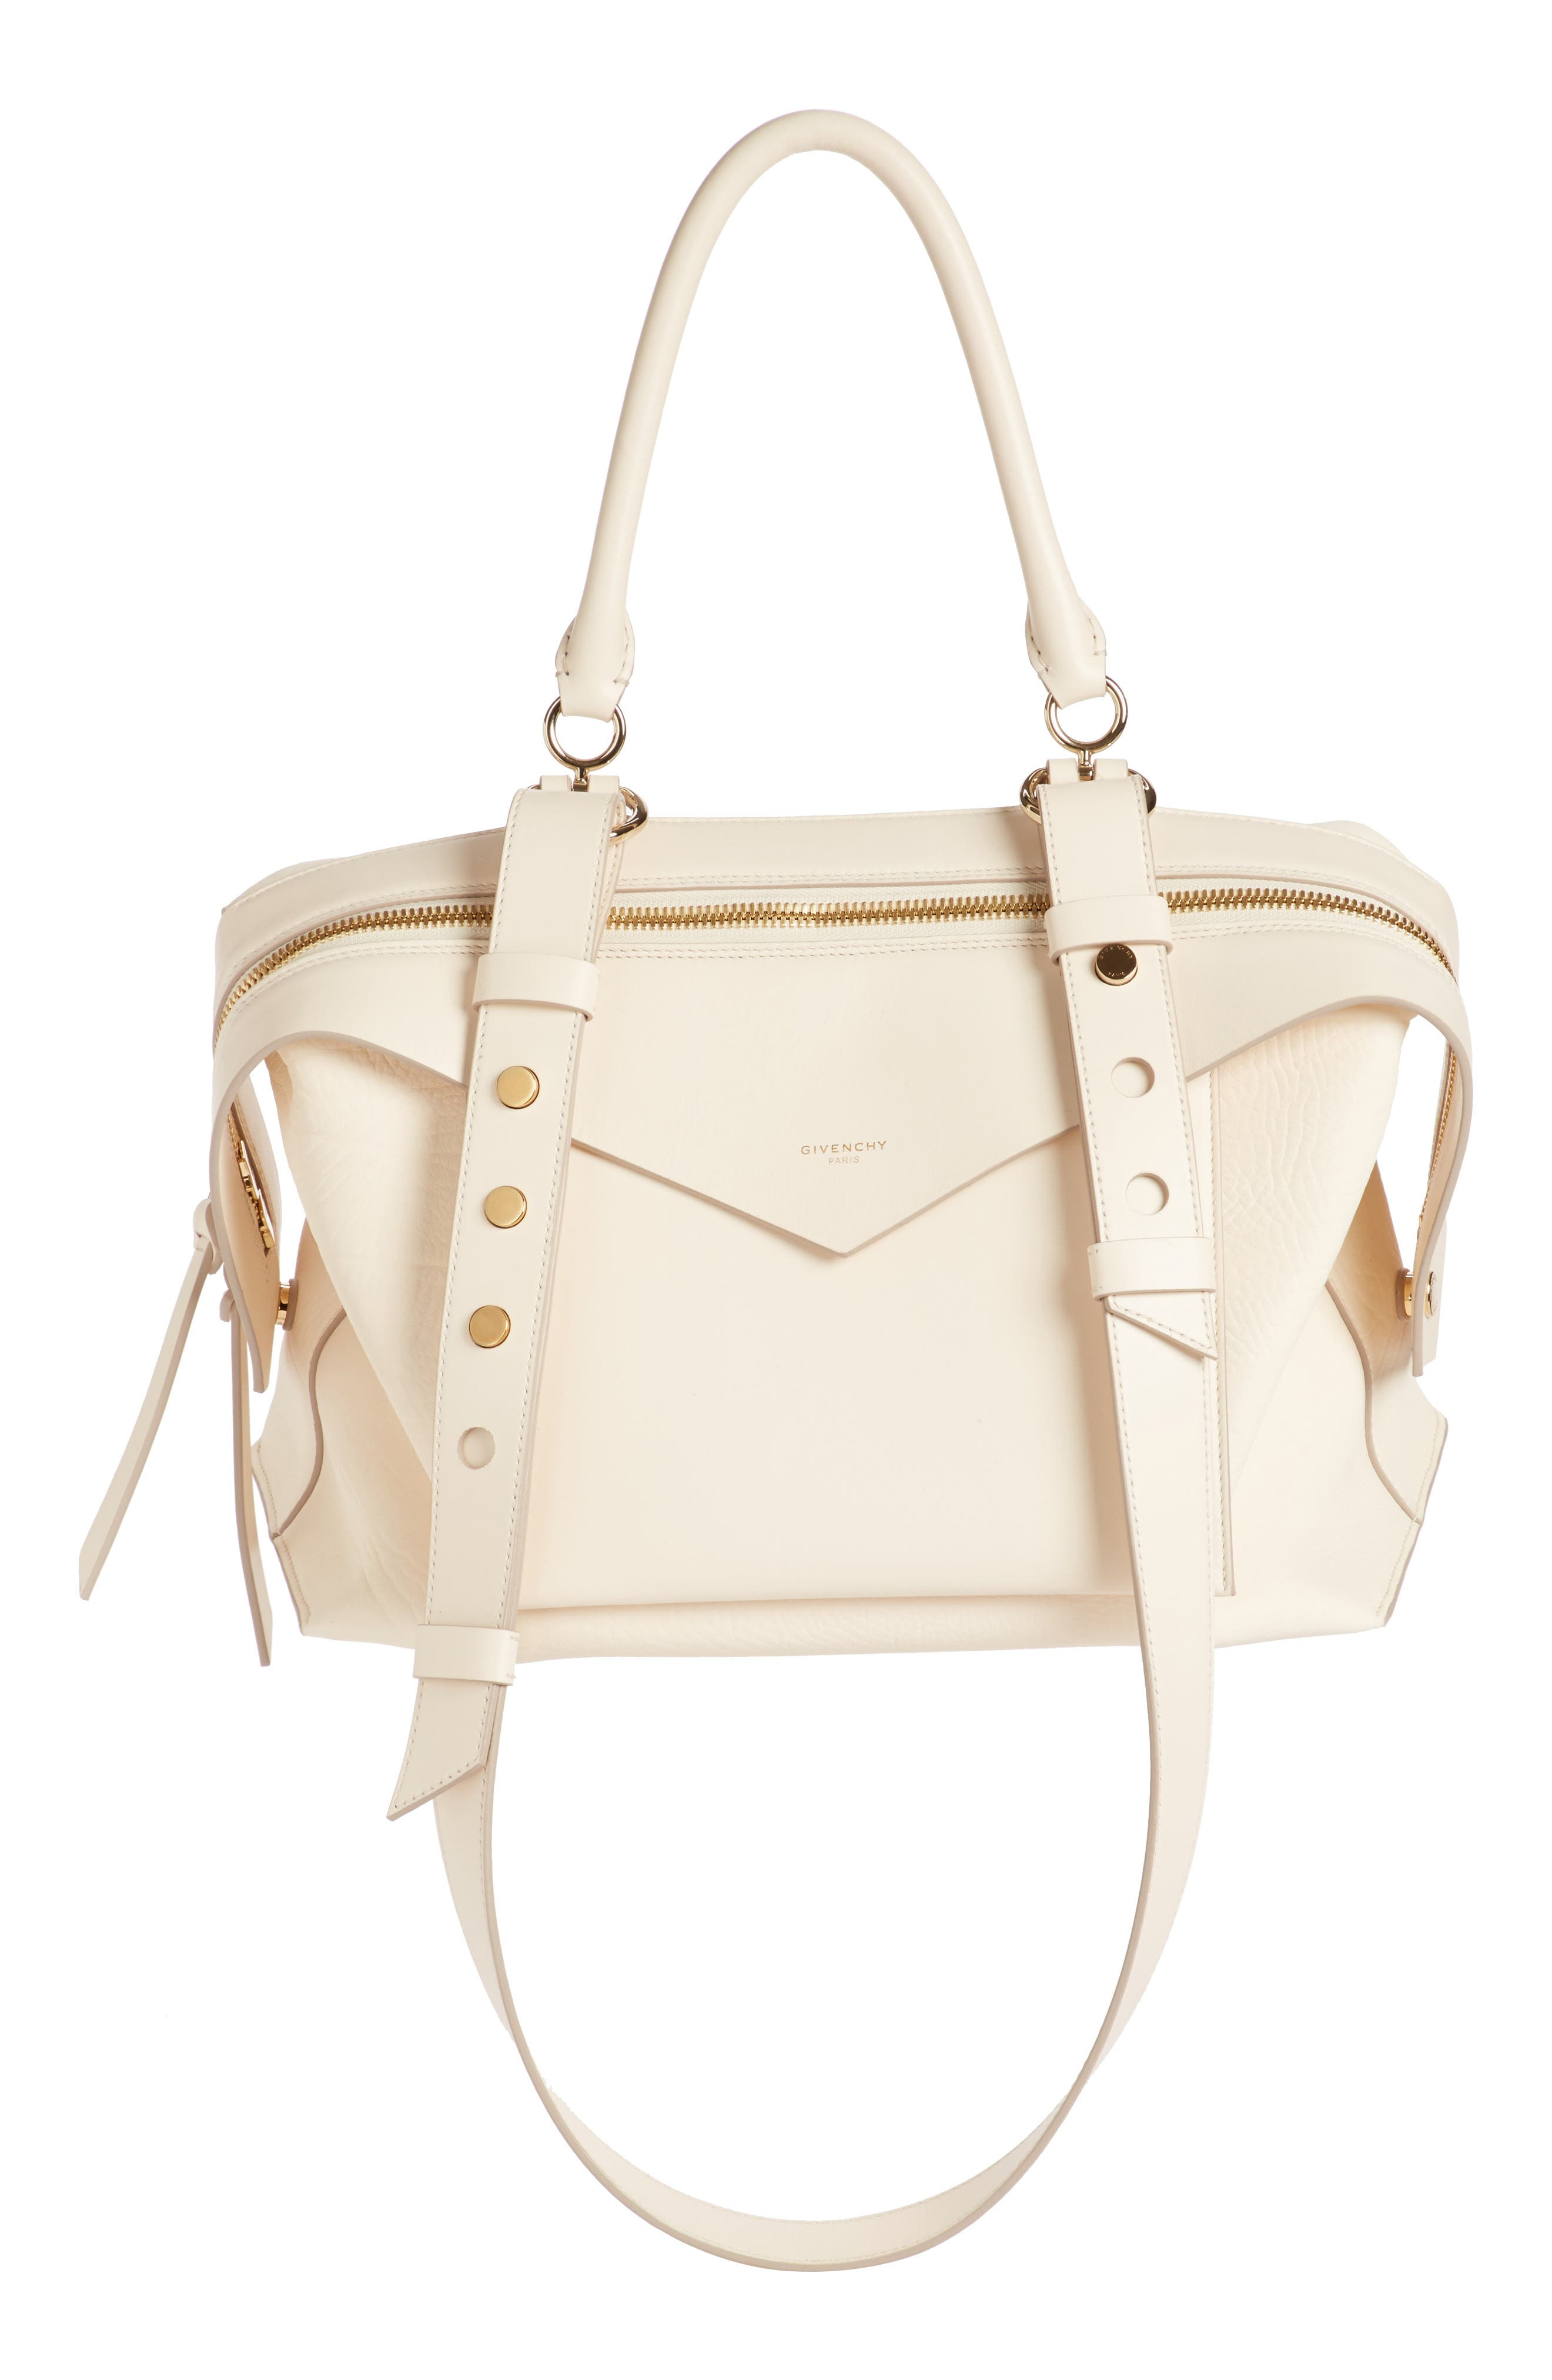 Givenchy Medium Sway Leather Satchel